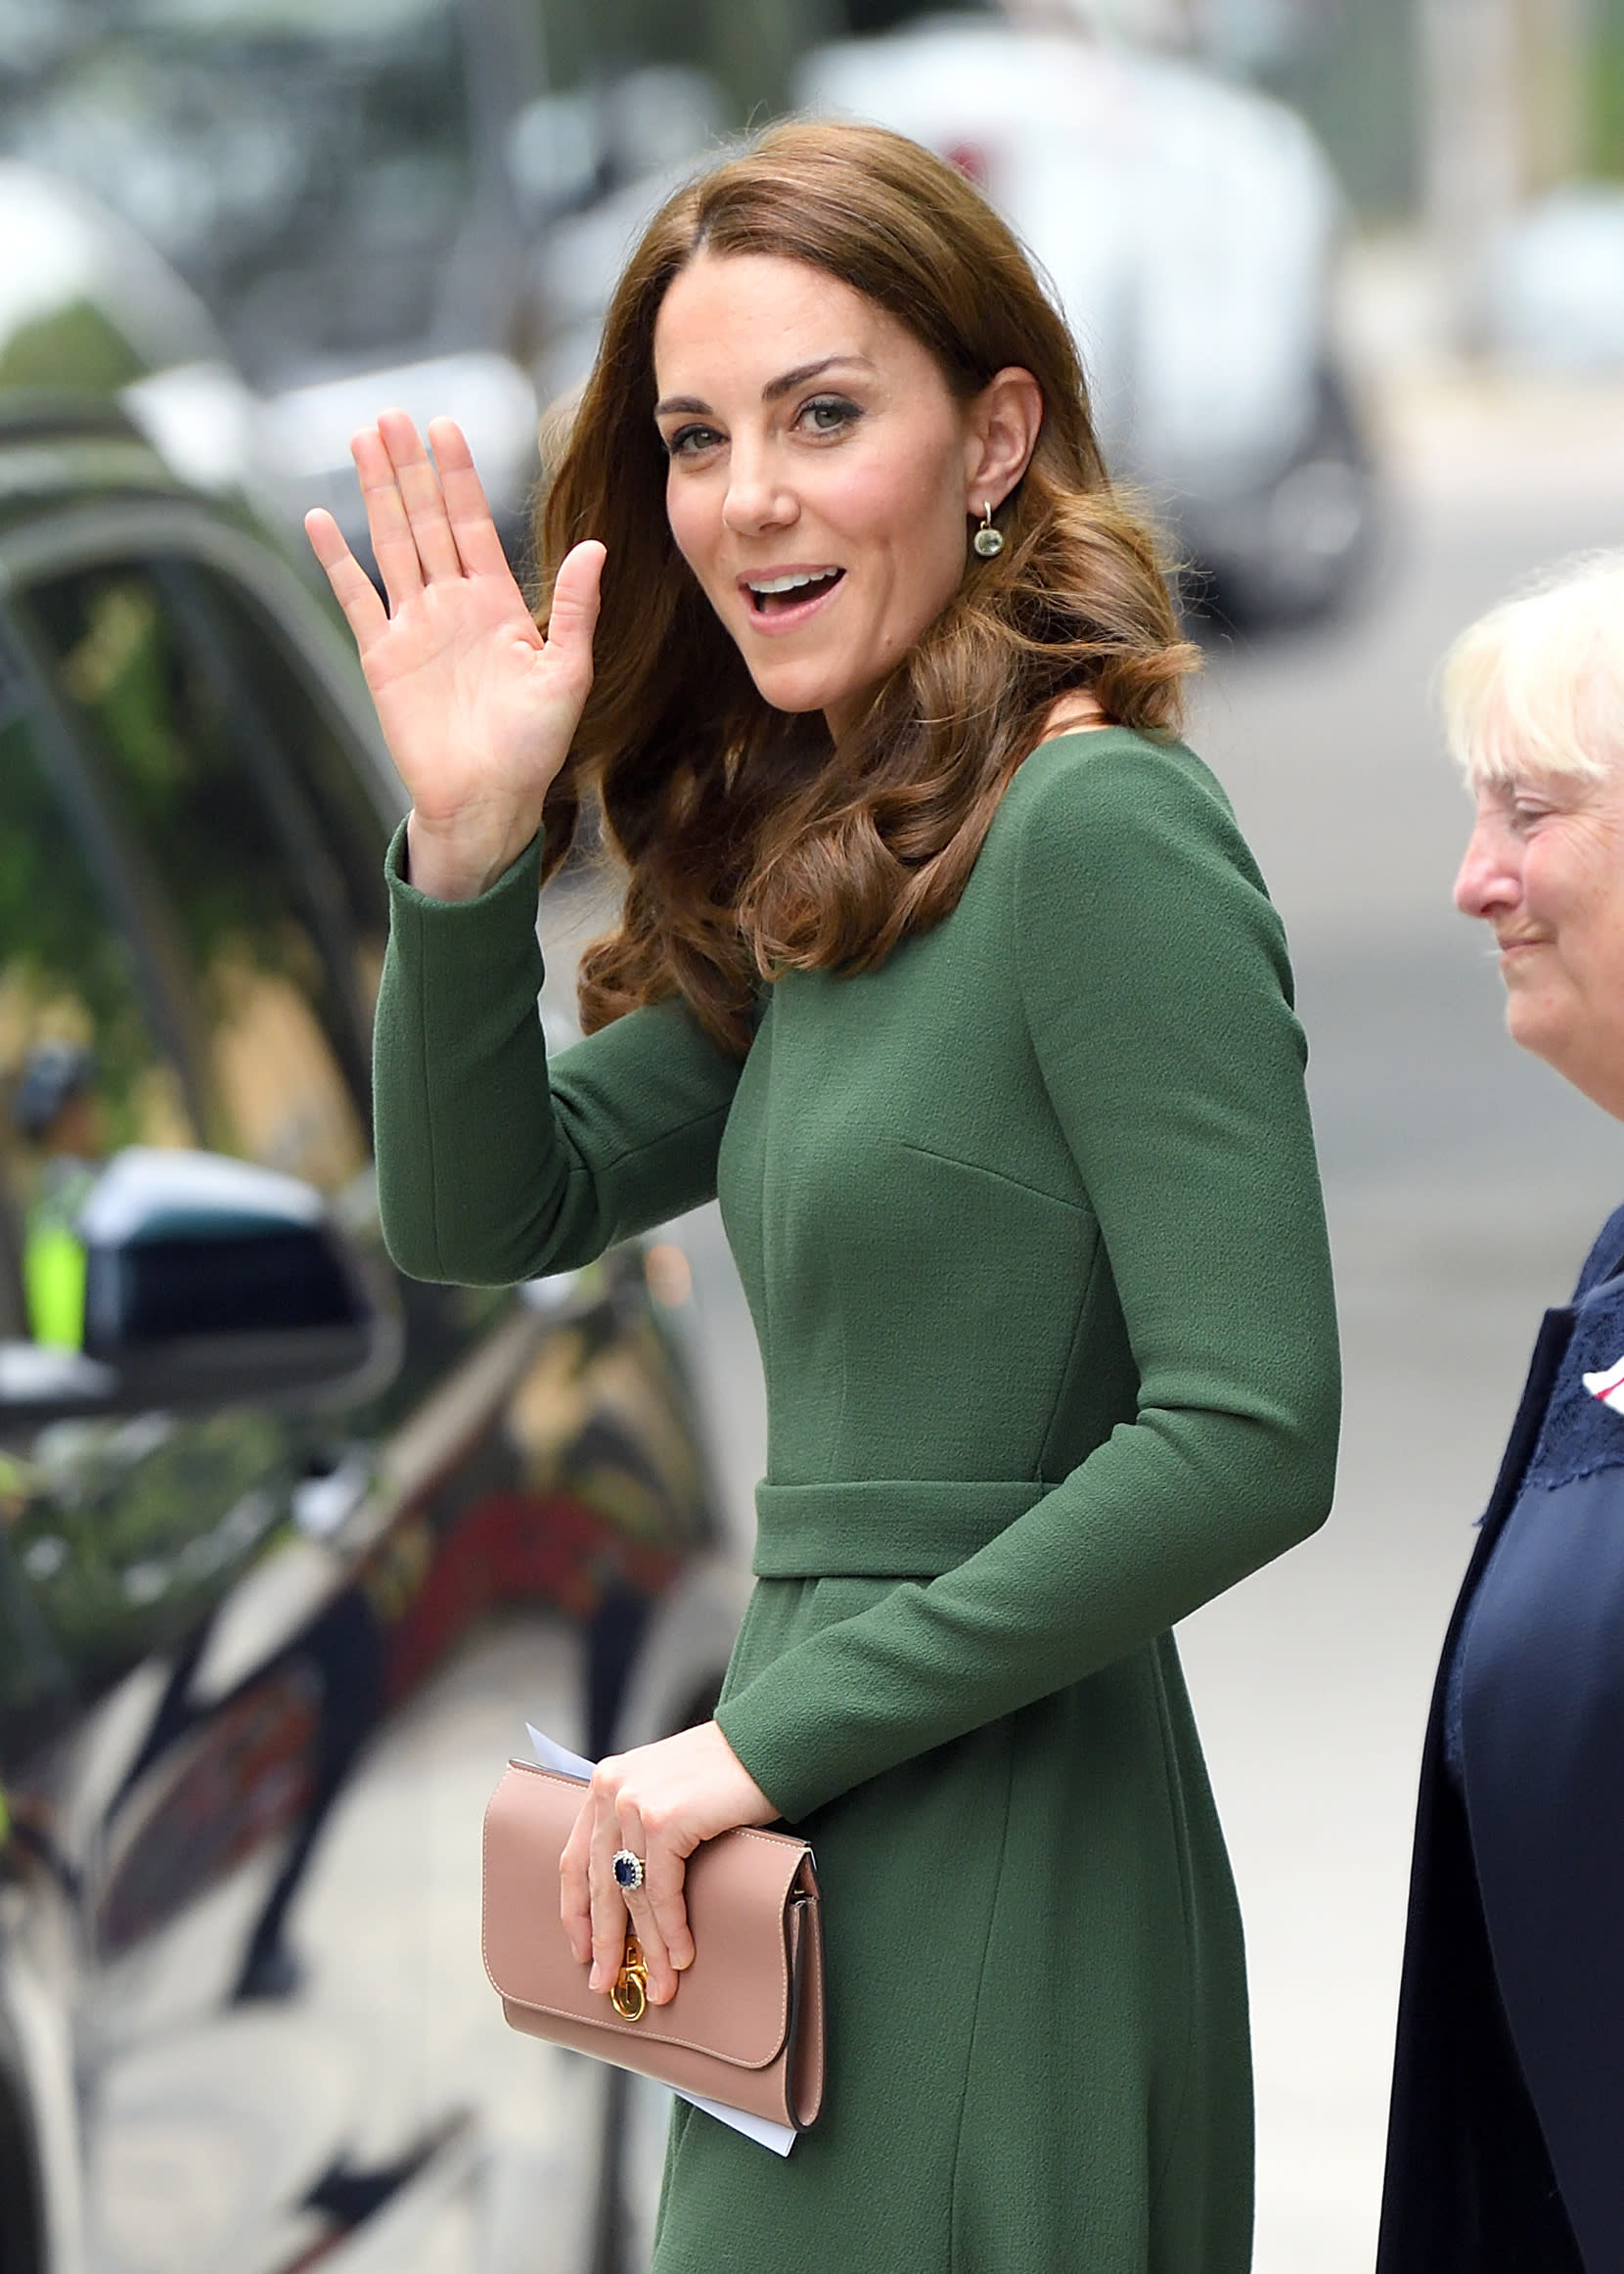 LONDON, ENGLAND - MAY 01: Catherine, Duchess of Cambridge departs after officially opening the new Centre of Excellence at Anna Freud Centre on May 01, 2019 in London, England. The Duchess of Cambridge is Patron of the Anna Freud National Centre for Children and Families.  (Photo by Karwai Tang/WireImage)